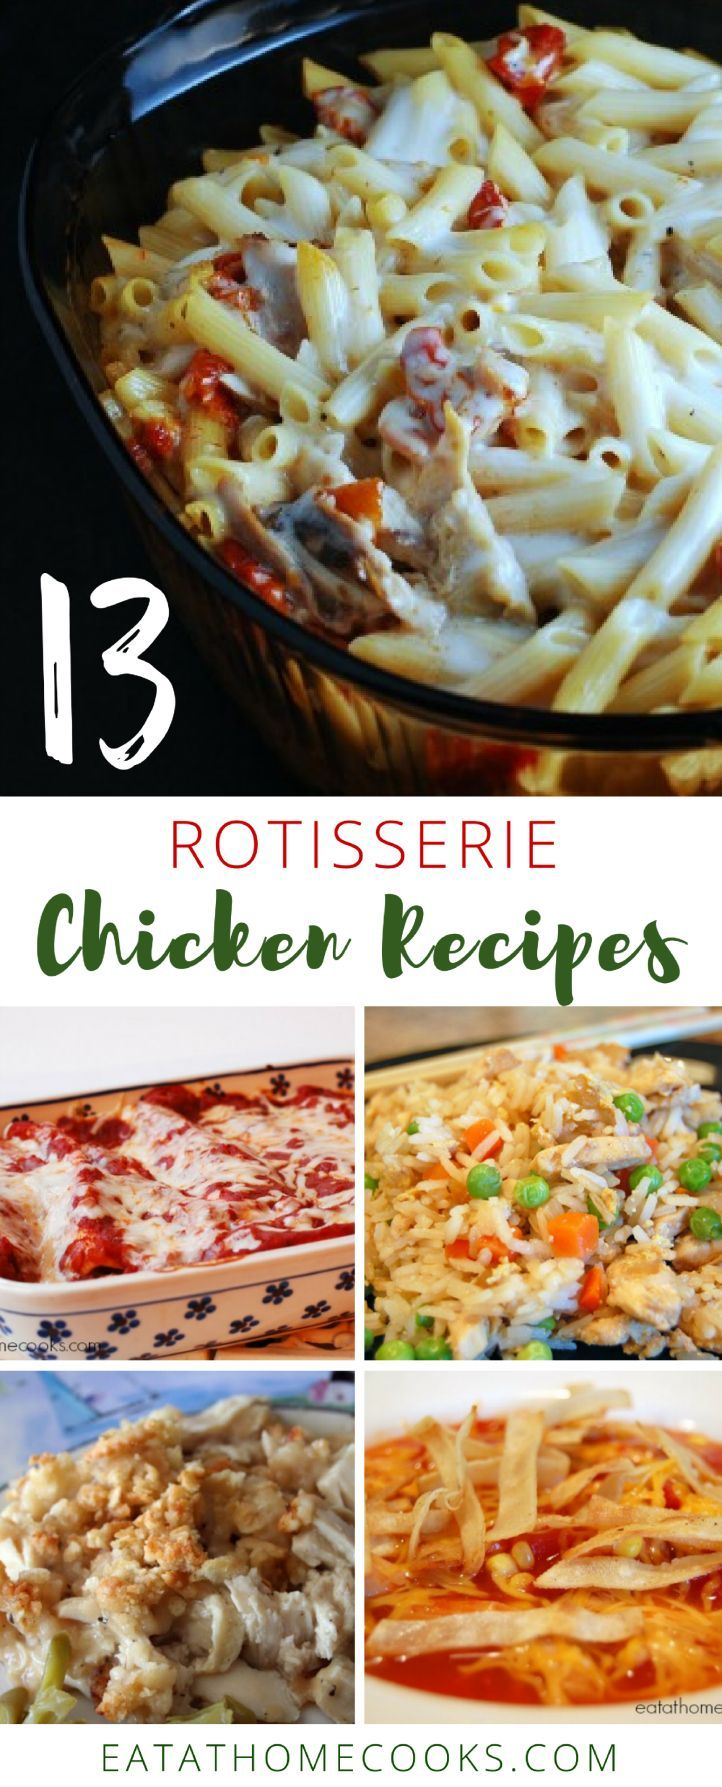 Have you ever wondered what to do with a Costco rotisserie chicken?  If so, I've got you covered!